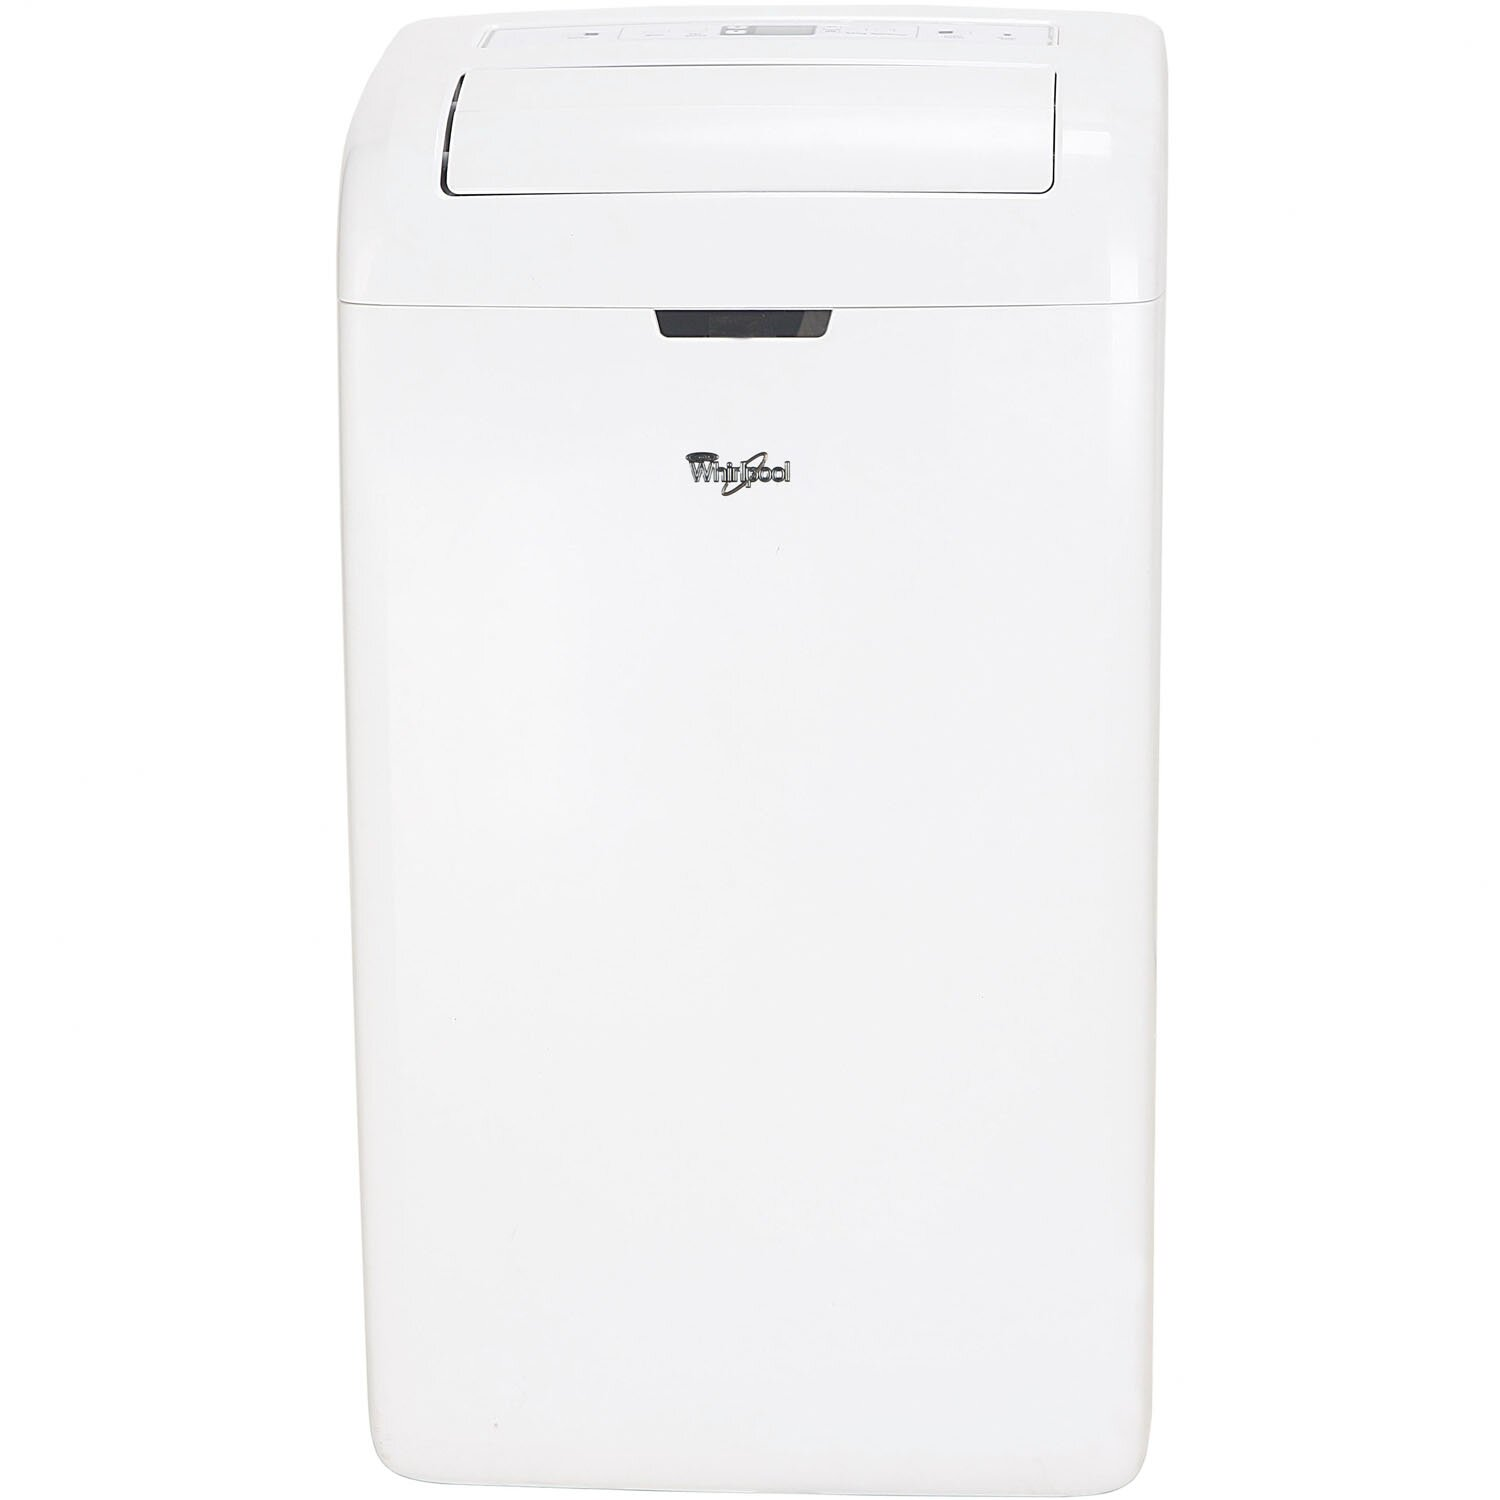 Whirlpool Portable Air Conditioner with Remote & Reviews Wayfair  #5F5F6C